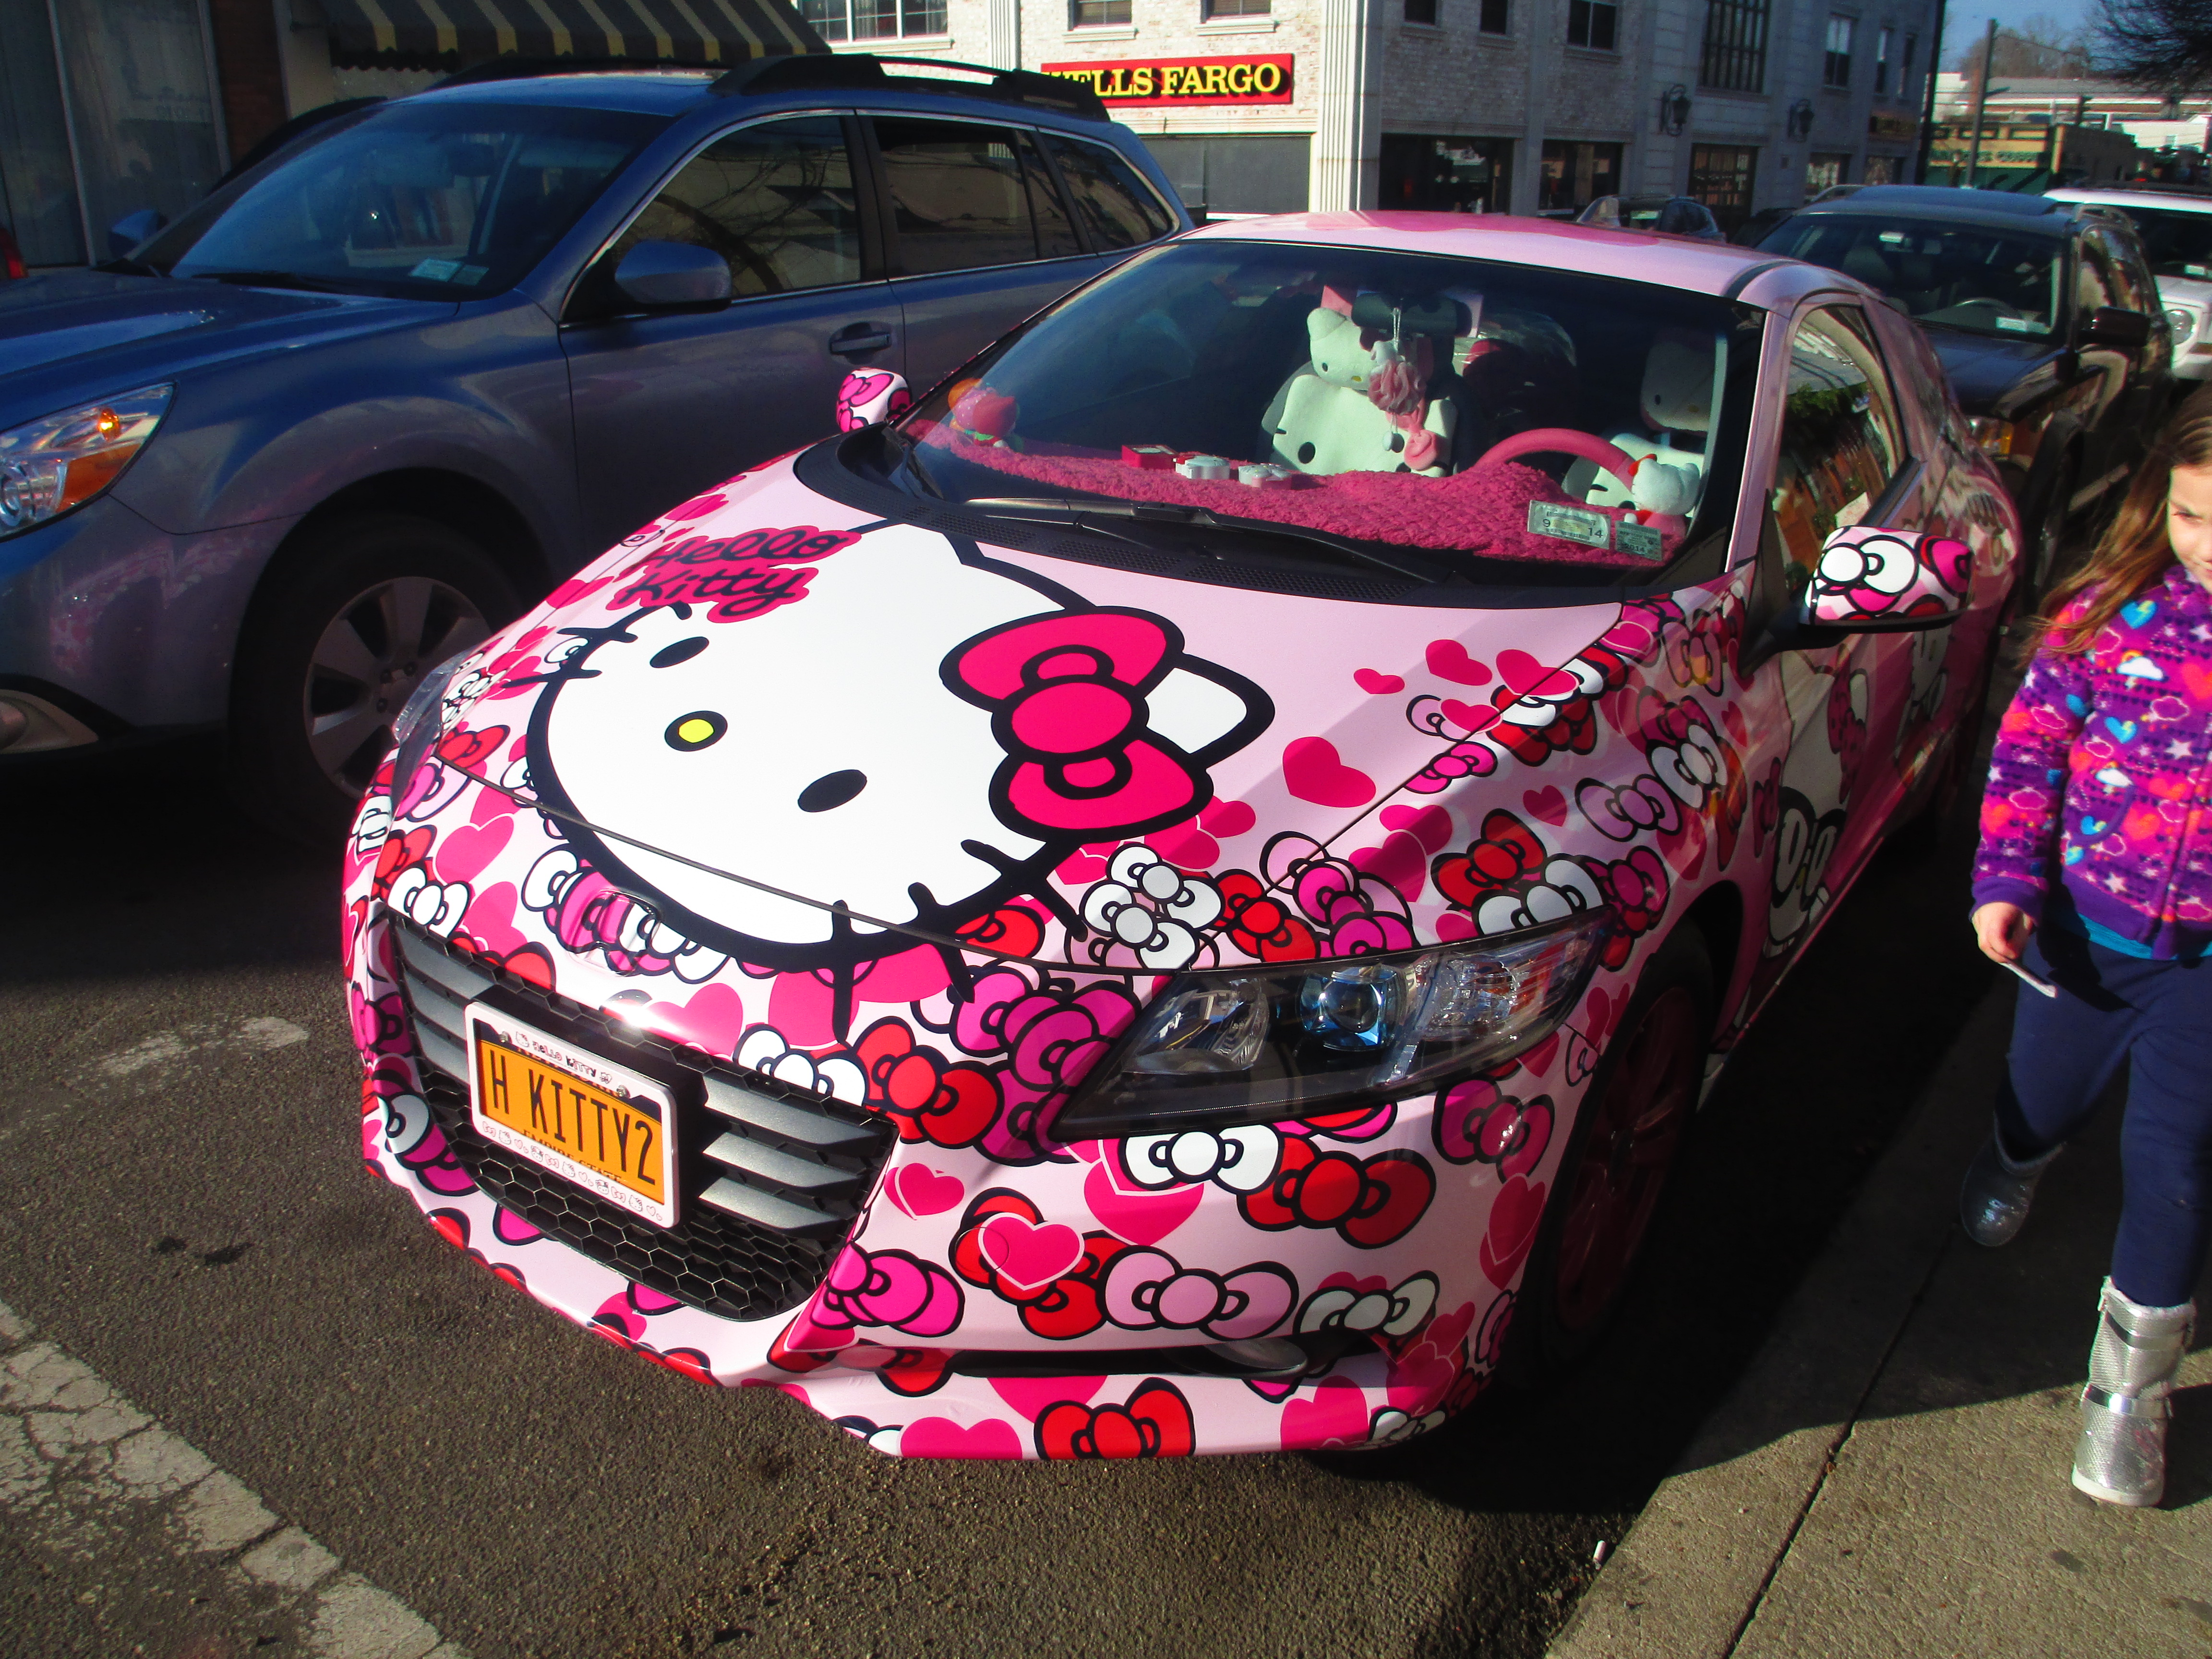 we were walking through the village and saw this car my kids immediately swooned hello kitty everything even on the inside